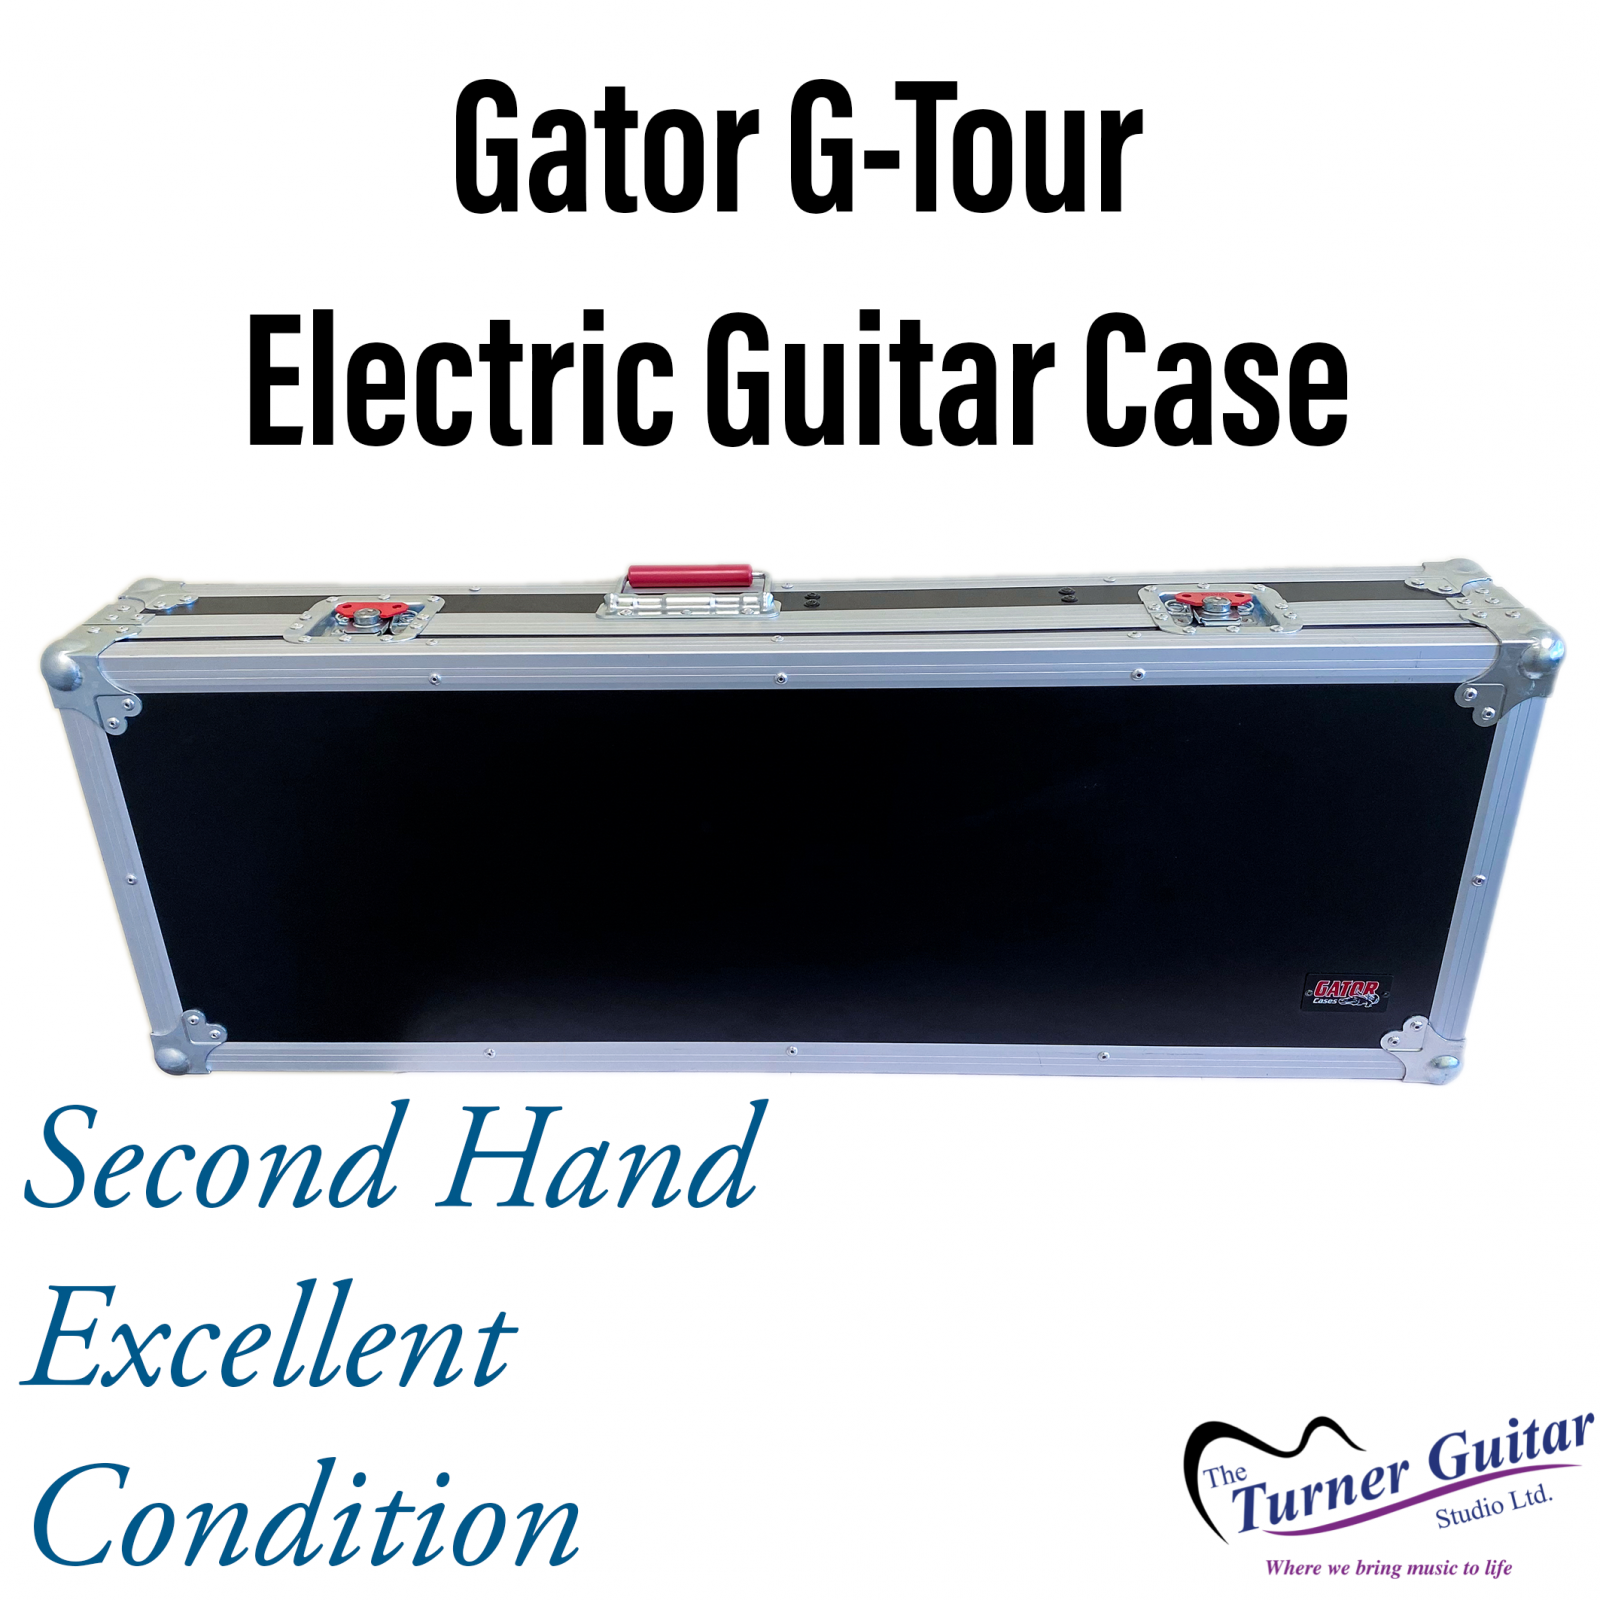 Gator G-Tour - Heavy Duty ATA Flight Case for Electric Guitars  - Excellent Condition Used